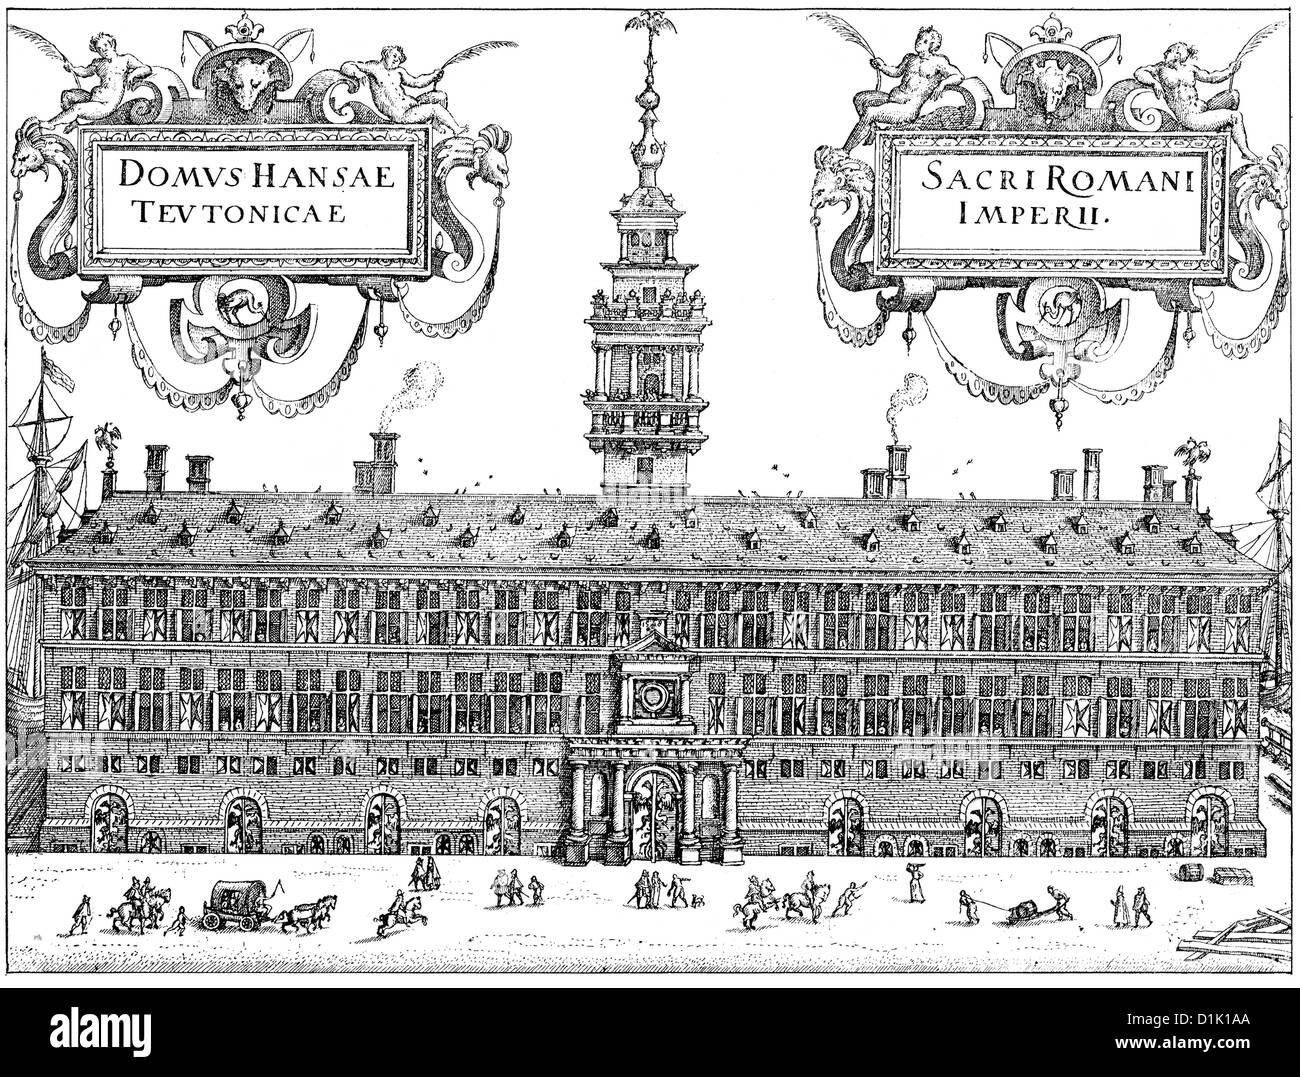 the office building of the Hanseatic League in Antwerp, Spanish Netherlands, 16th century, today Belgium, Europe - Stock Image